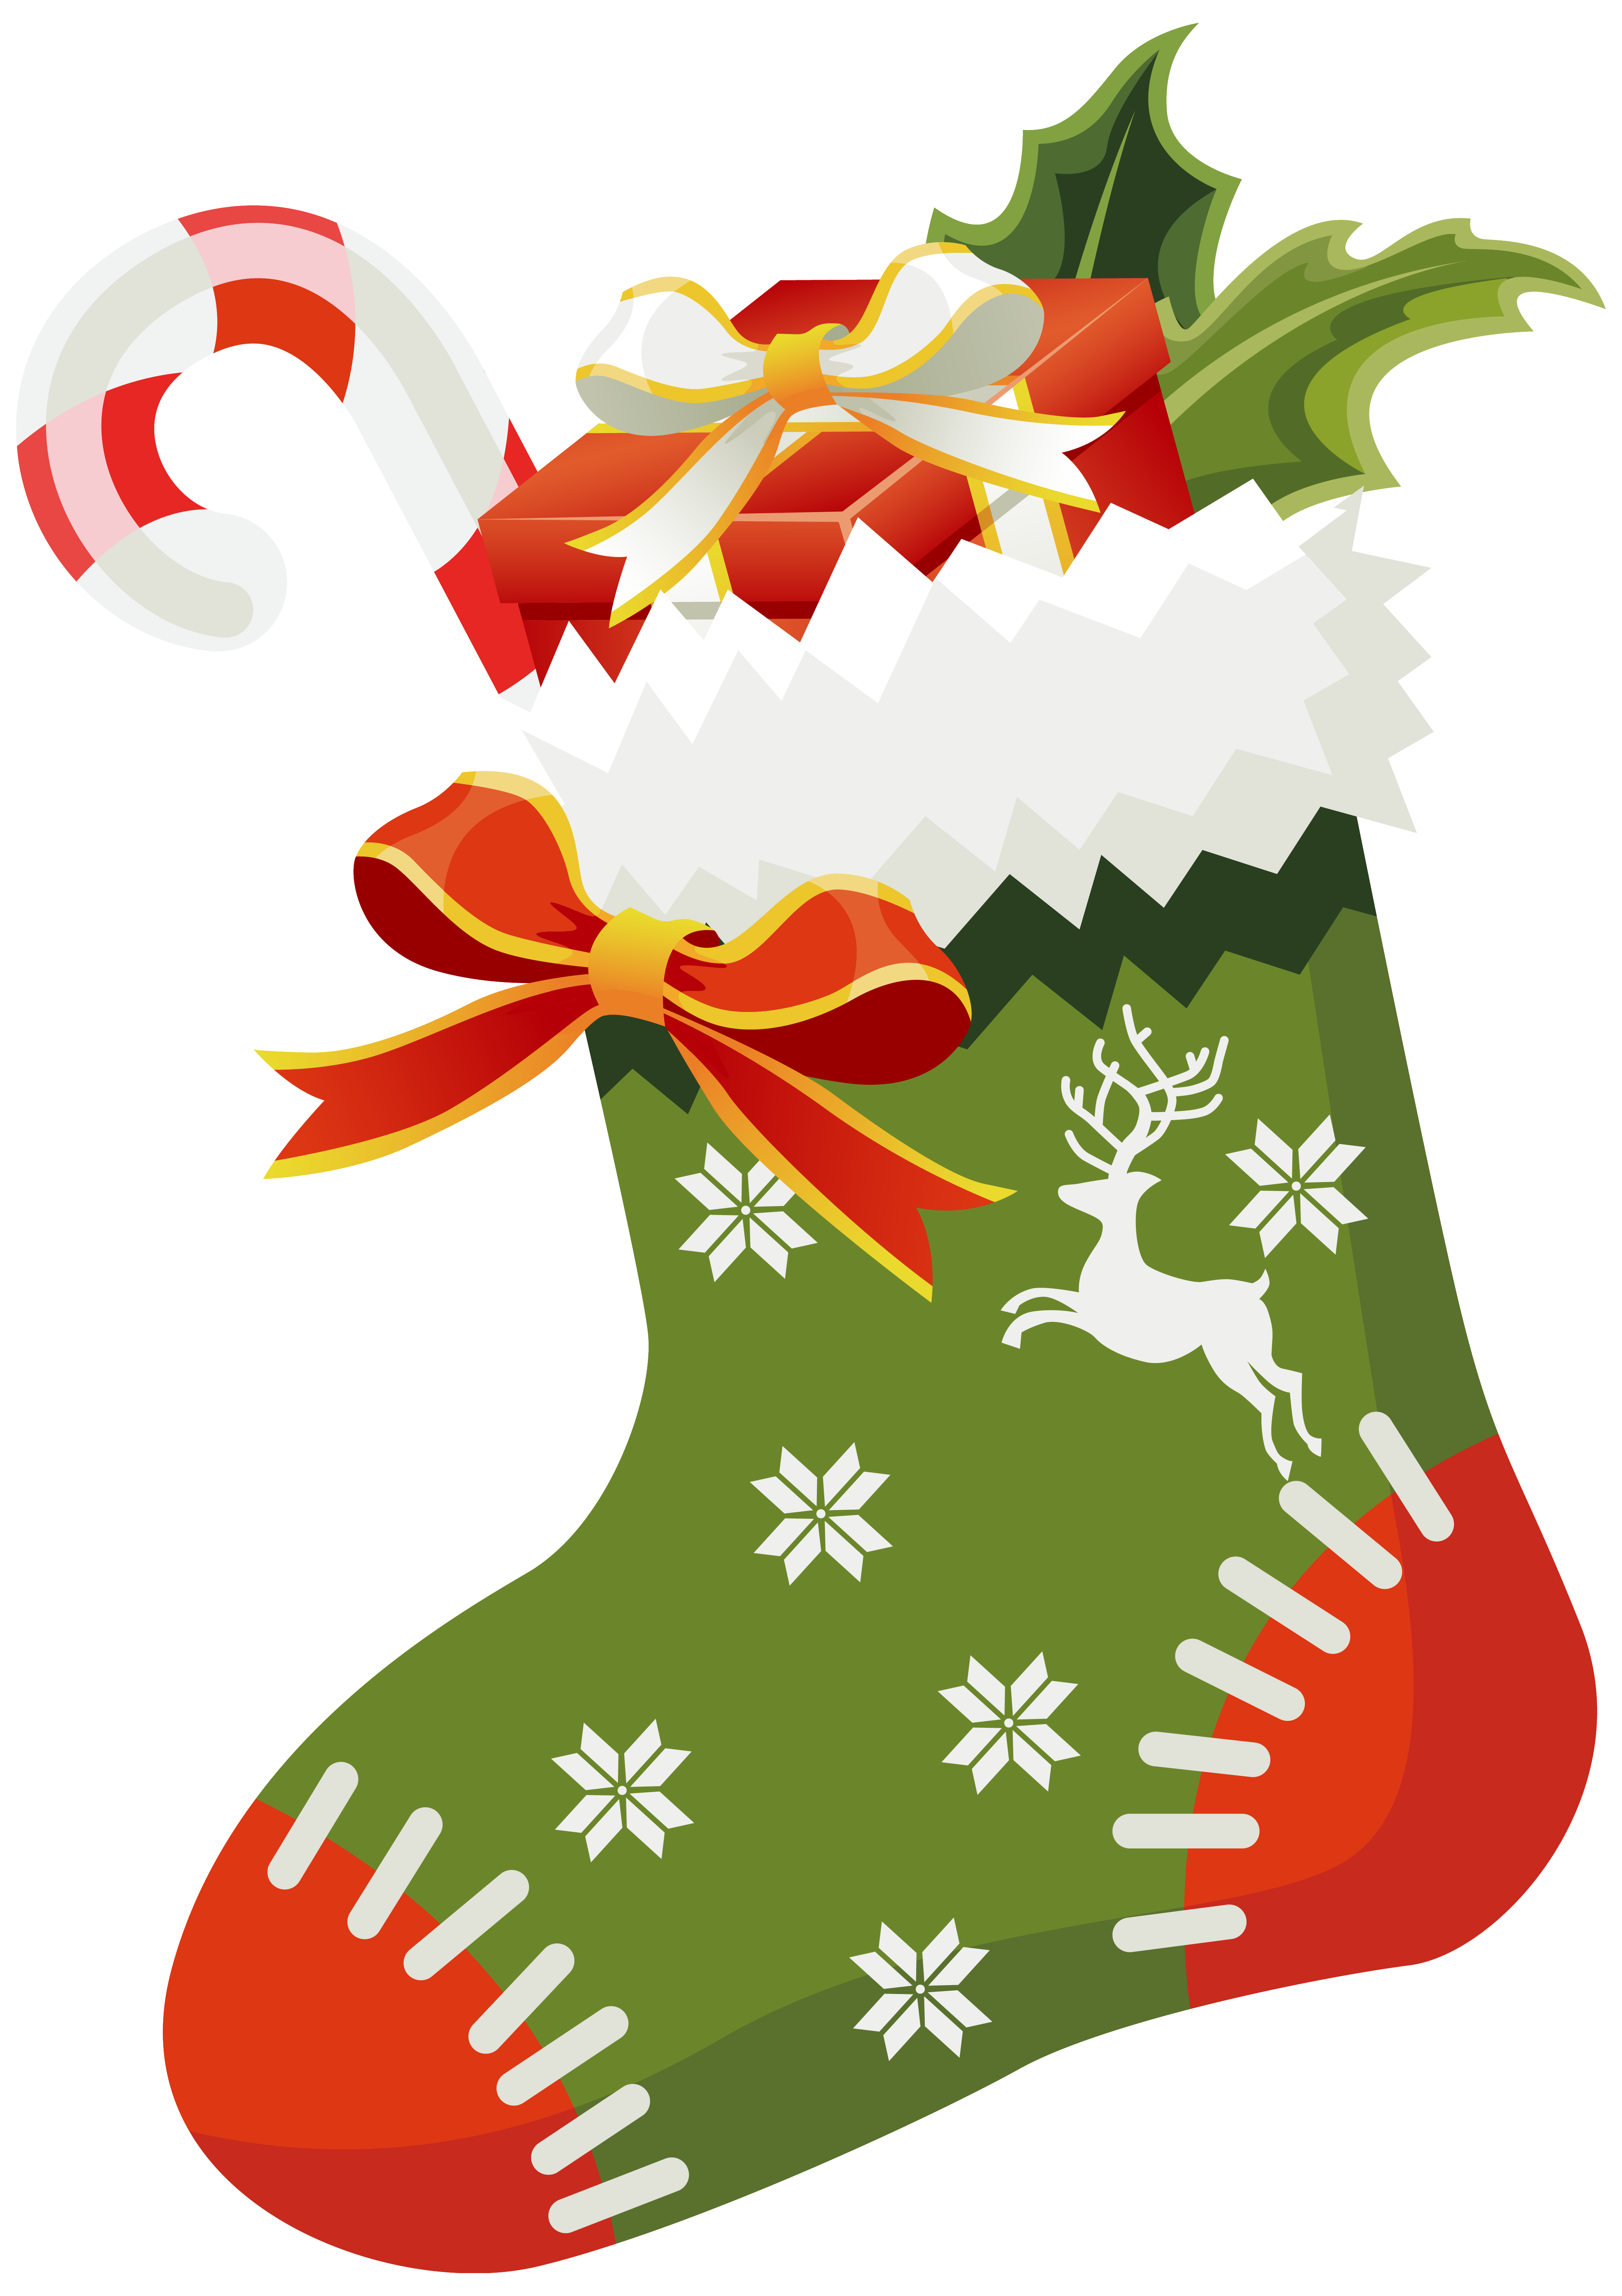 Fireplace clipart stocking clipart. Pin by amy on